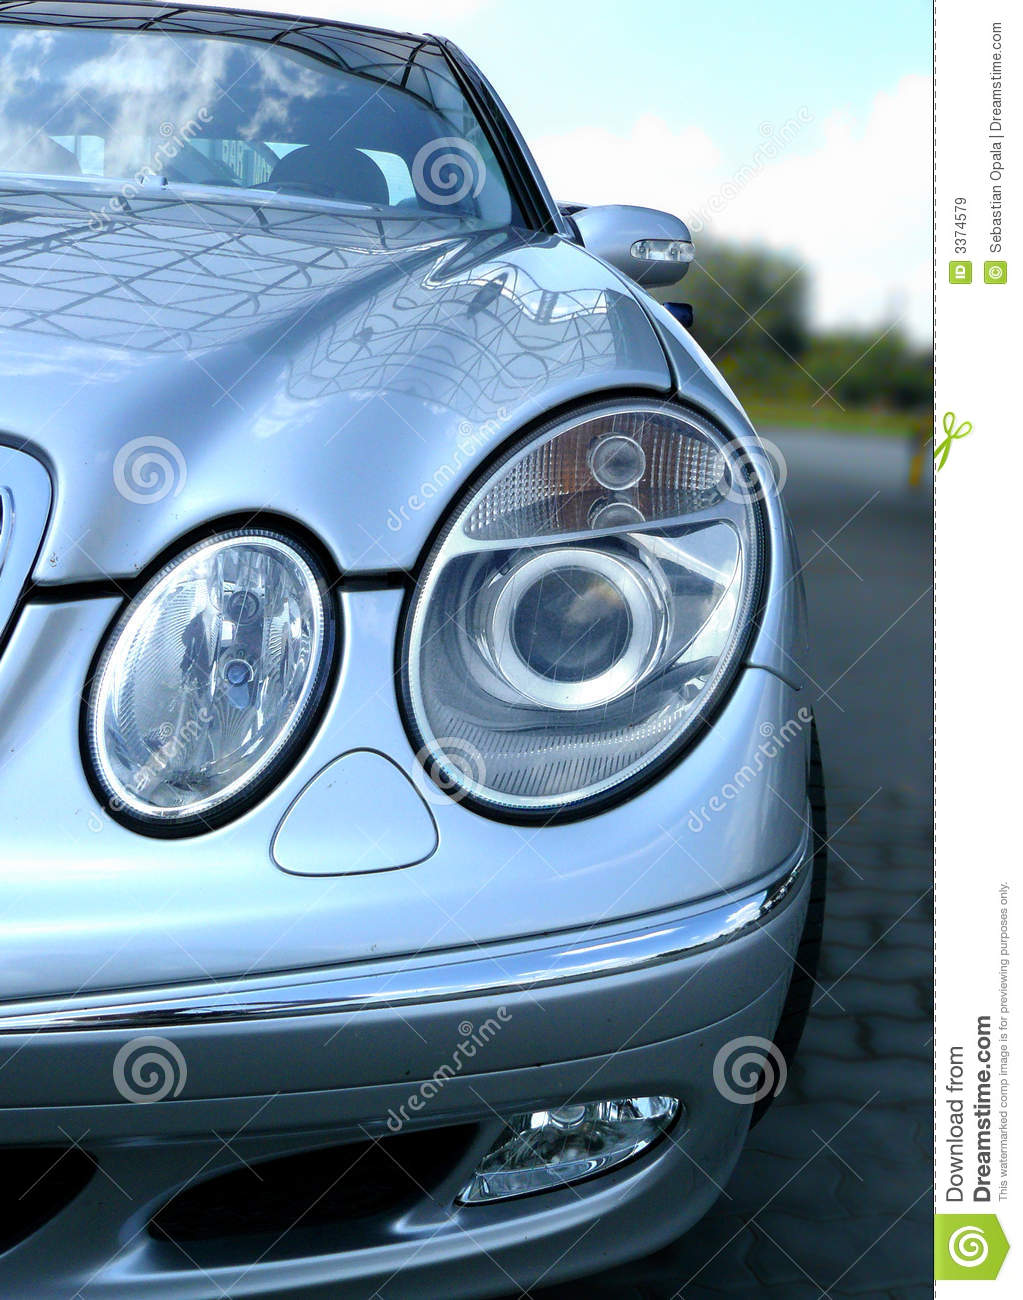 Mercedes car front lights royalty free stock images for Mercedes benz car wash free